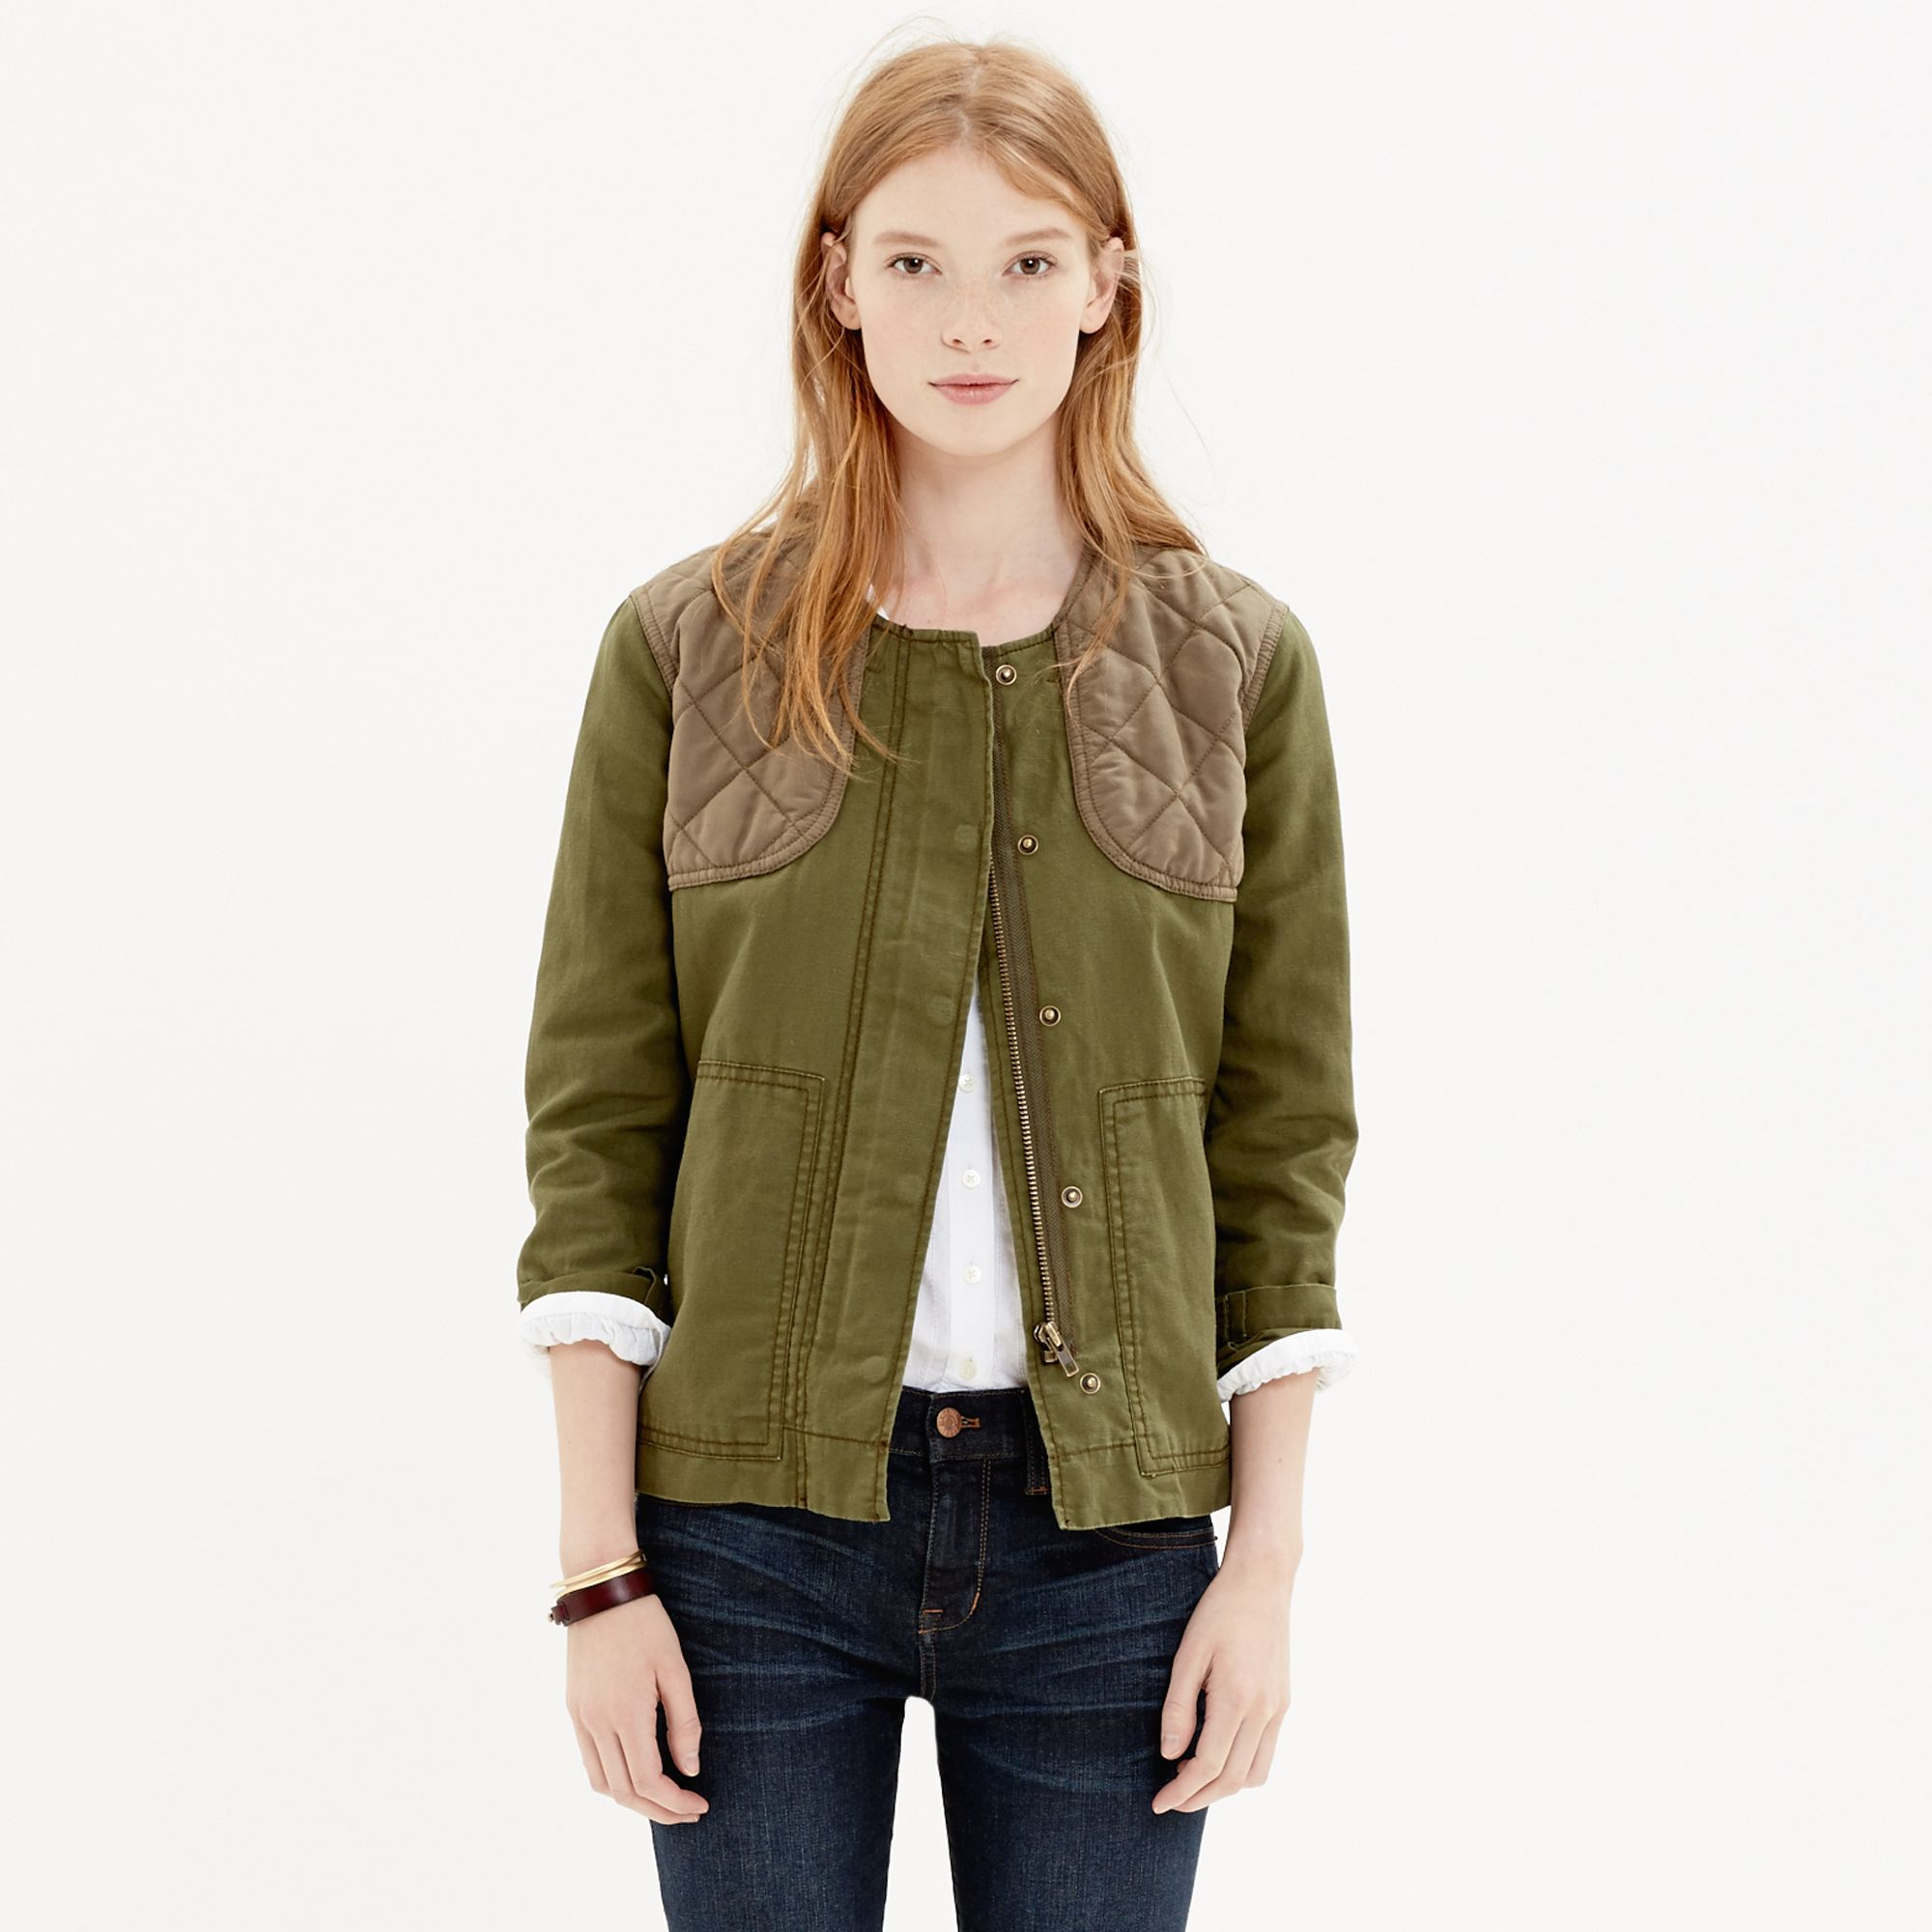 Madewell Quilted Bomber Jacket In Green Loden Lyst